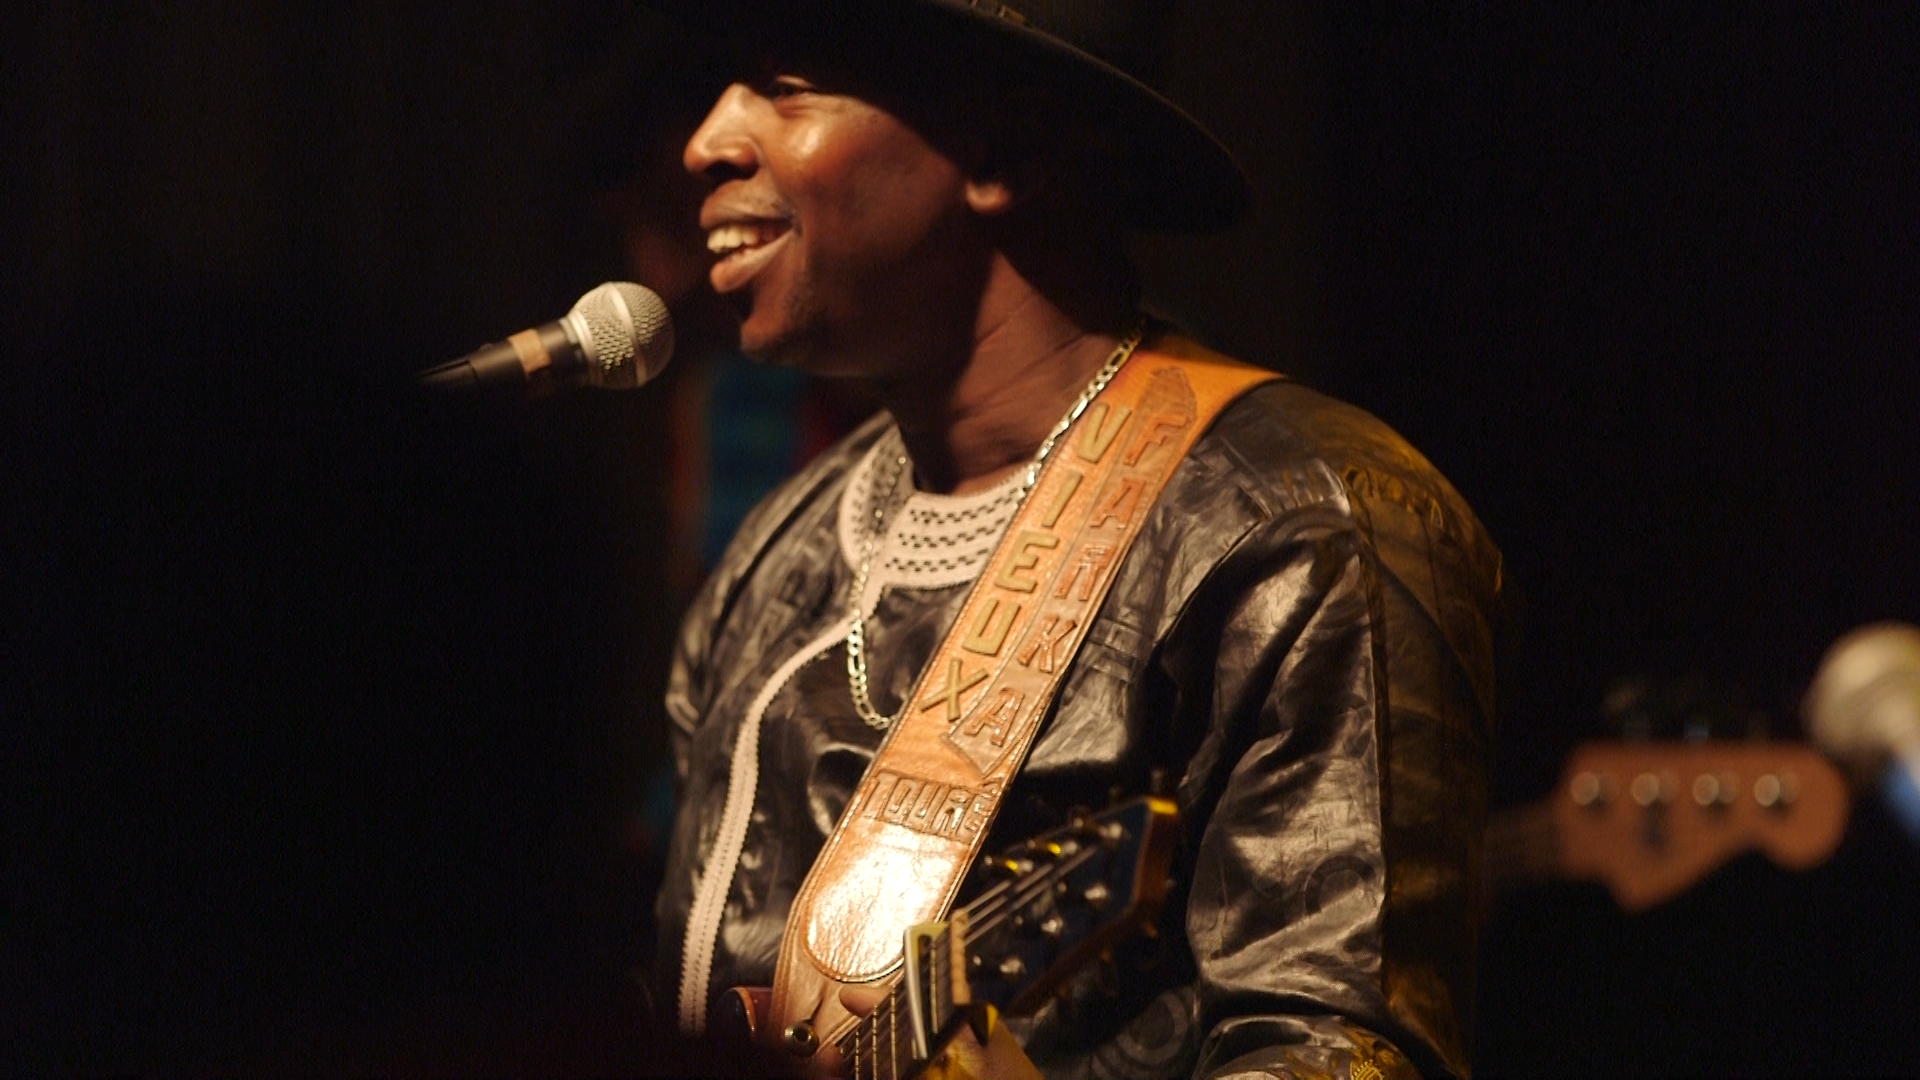 Vieux Farka Touré: The Fortunate Son - Vieux Farka Touré was drawn to music because of his father, but pursued it in spite of him.Season 4, Episode 7